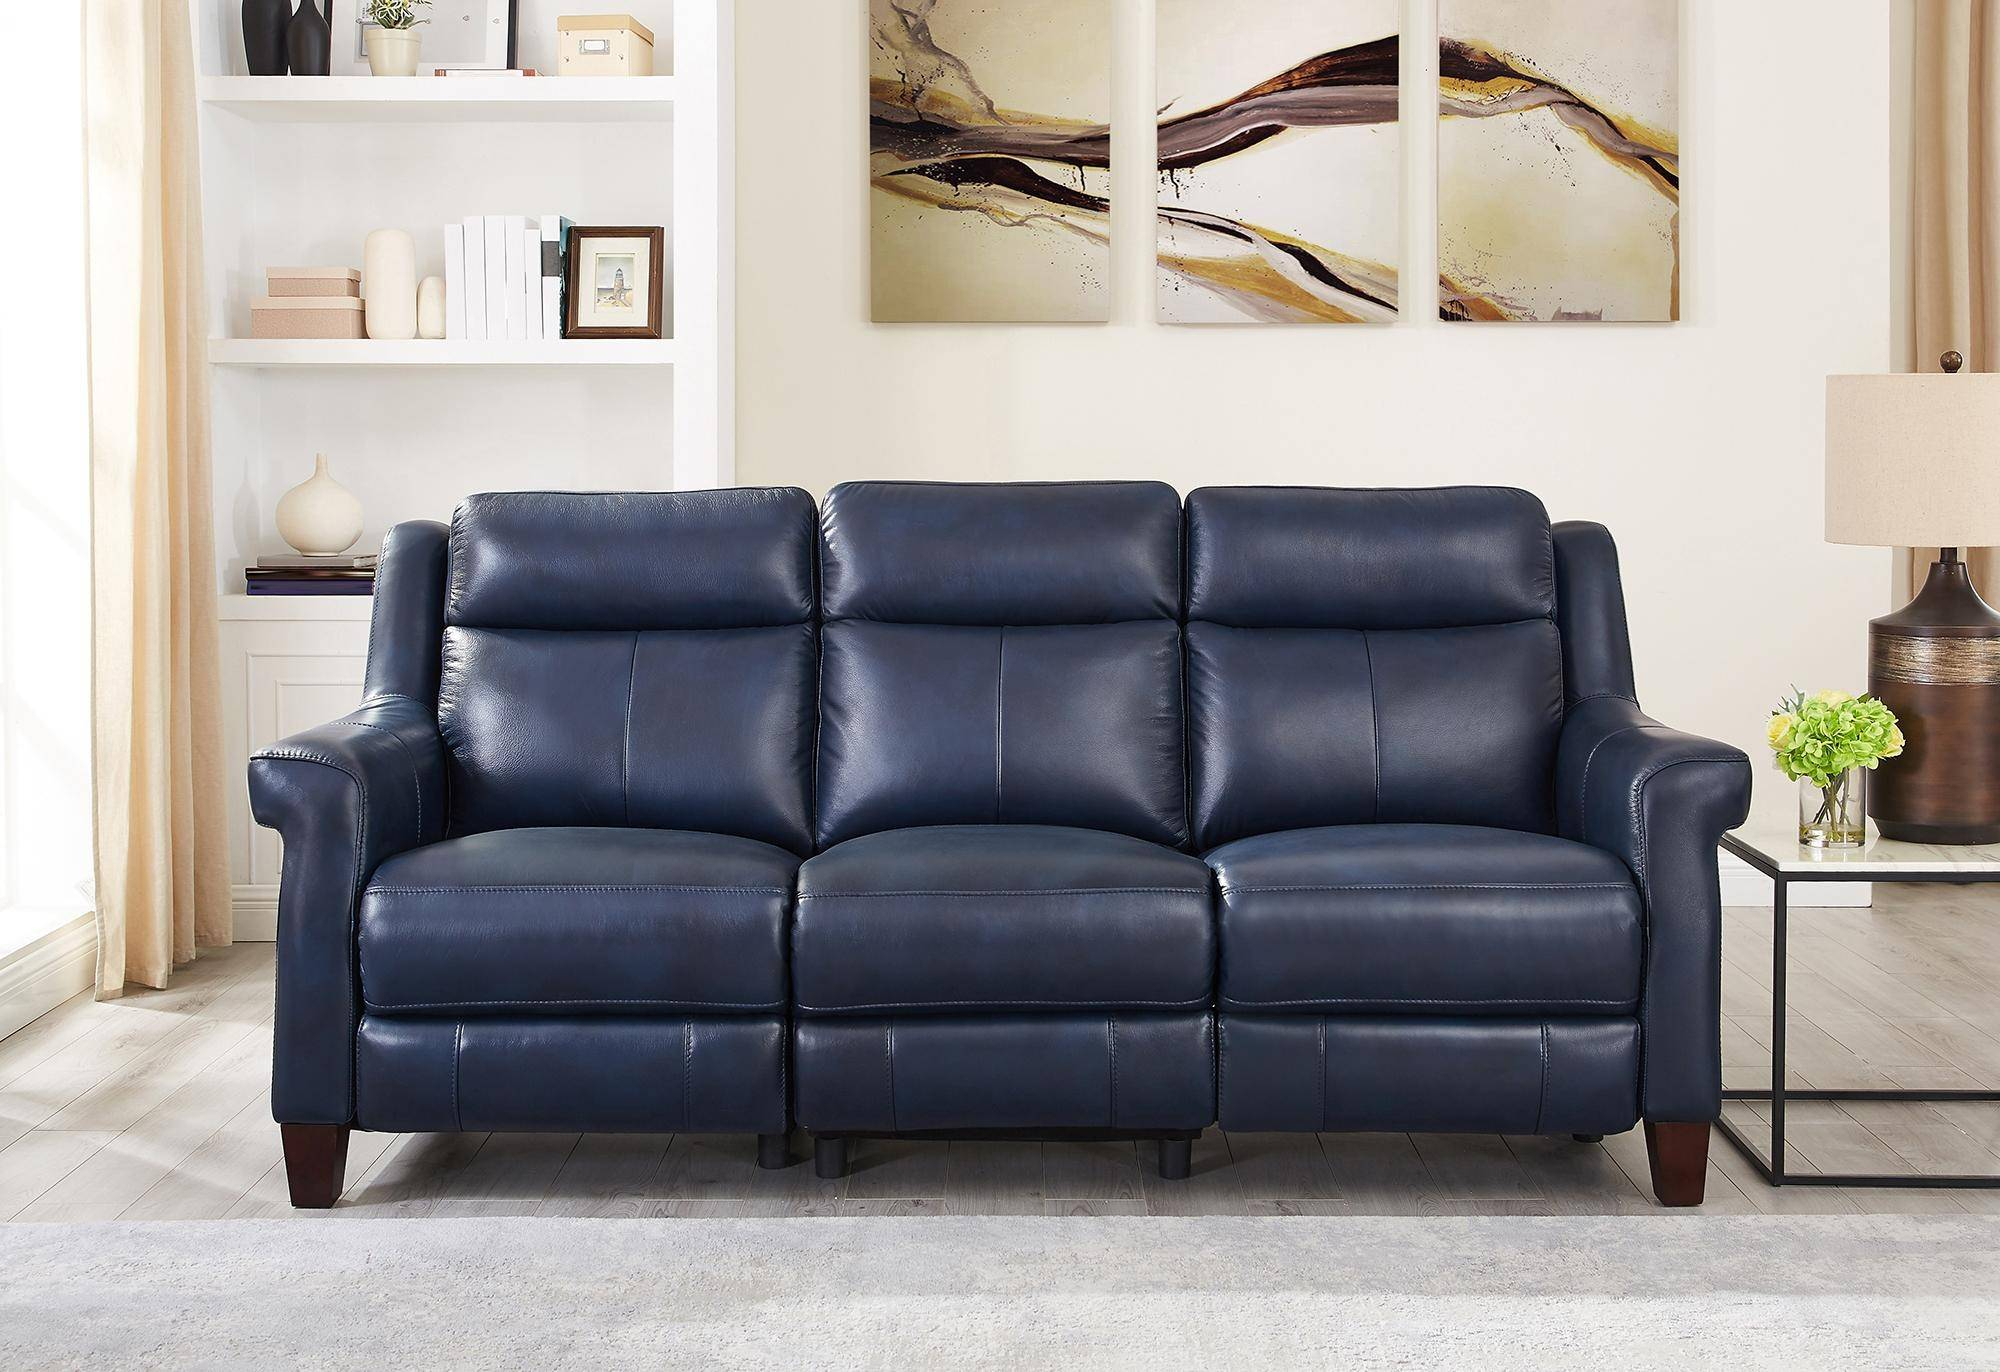 Chatham Blue Genuine Leather Power Reclining Sofa Loveseat With Regard To Power Reclining Sofas (View 4 of 15)